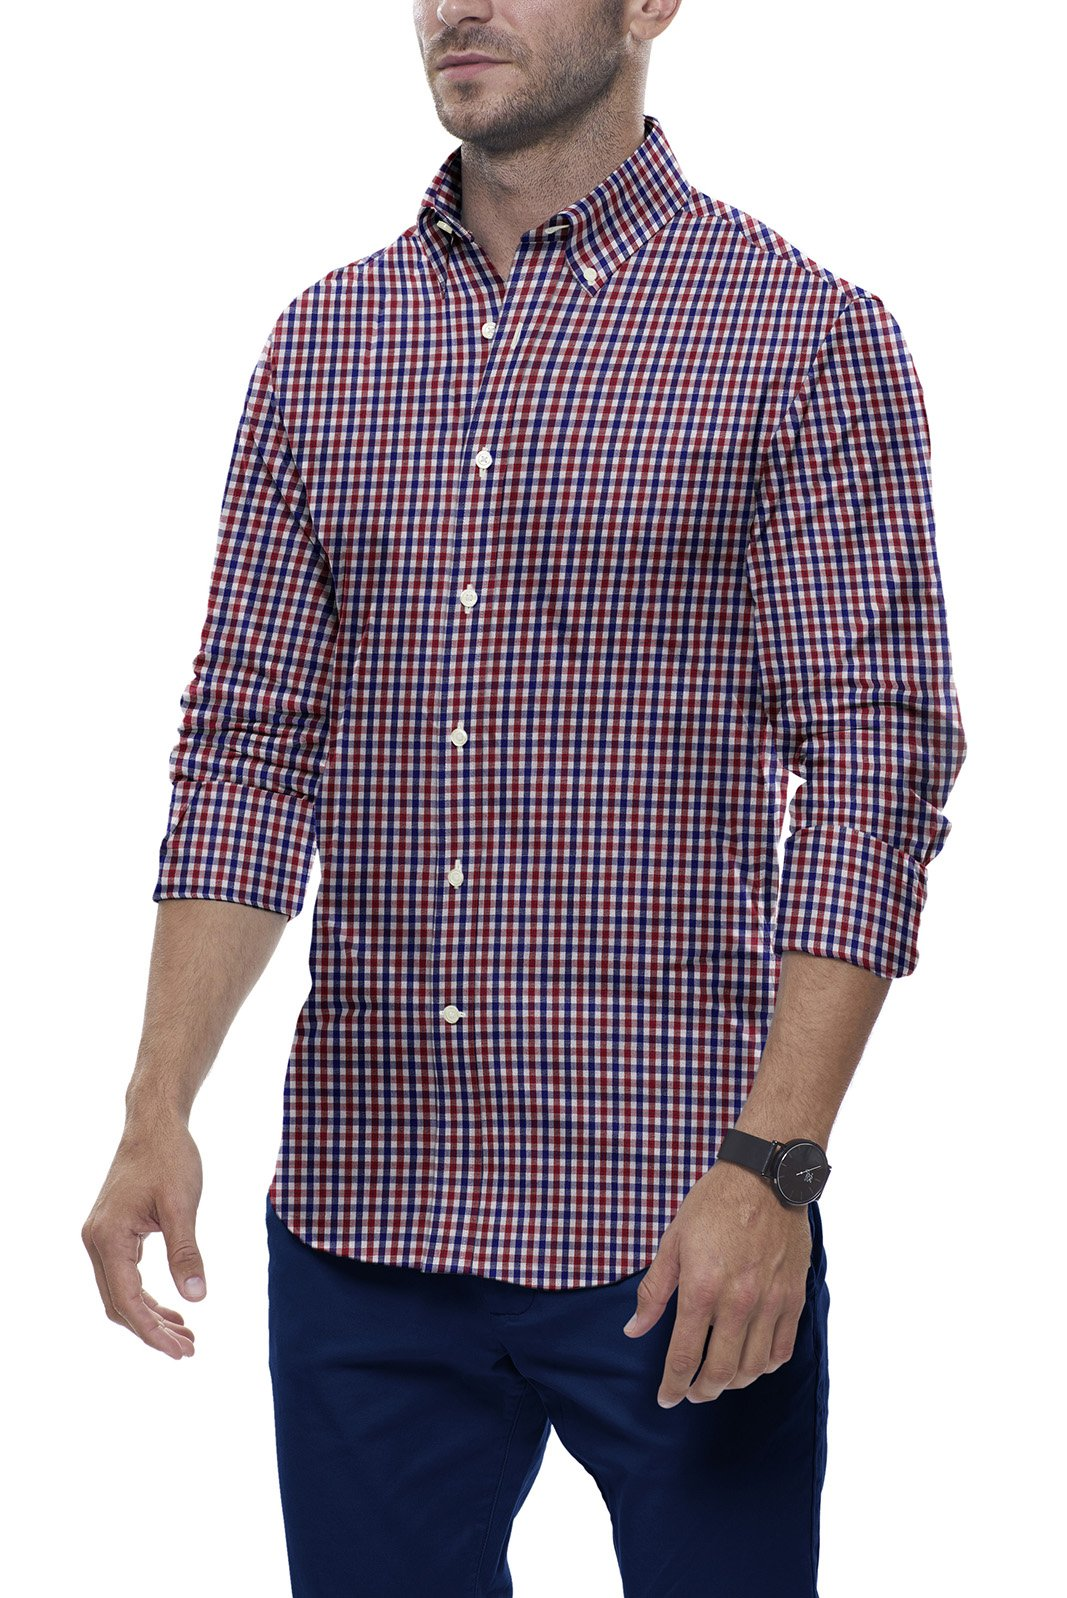 Red and Navy Tartan Check: Semi-Spread Collar, Long Sleeve